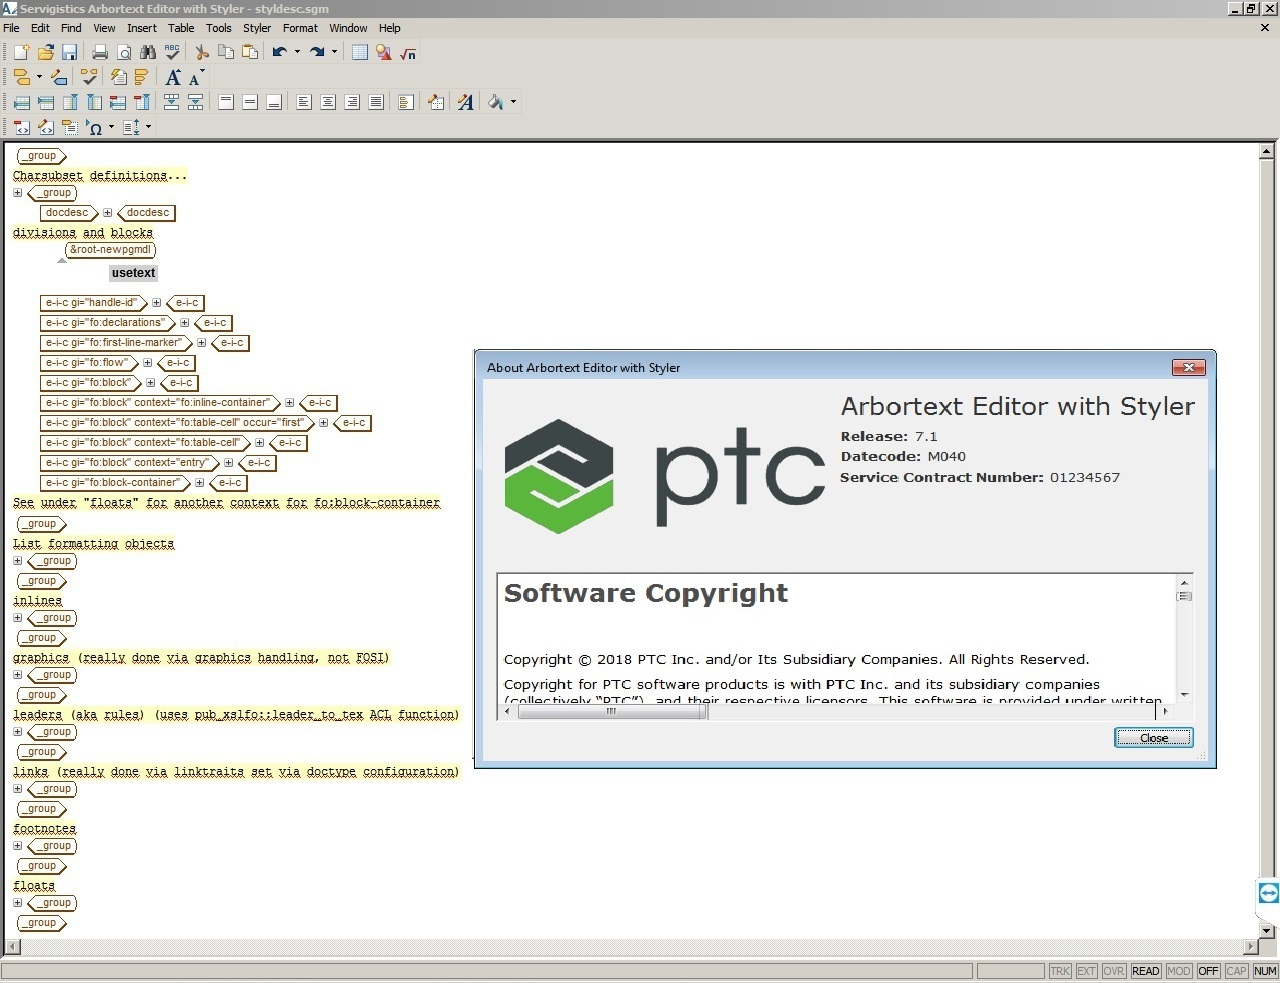 Download PTC Arbortext Editor 7.1 M040 Win64 full license forever